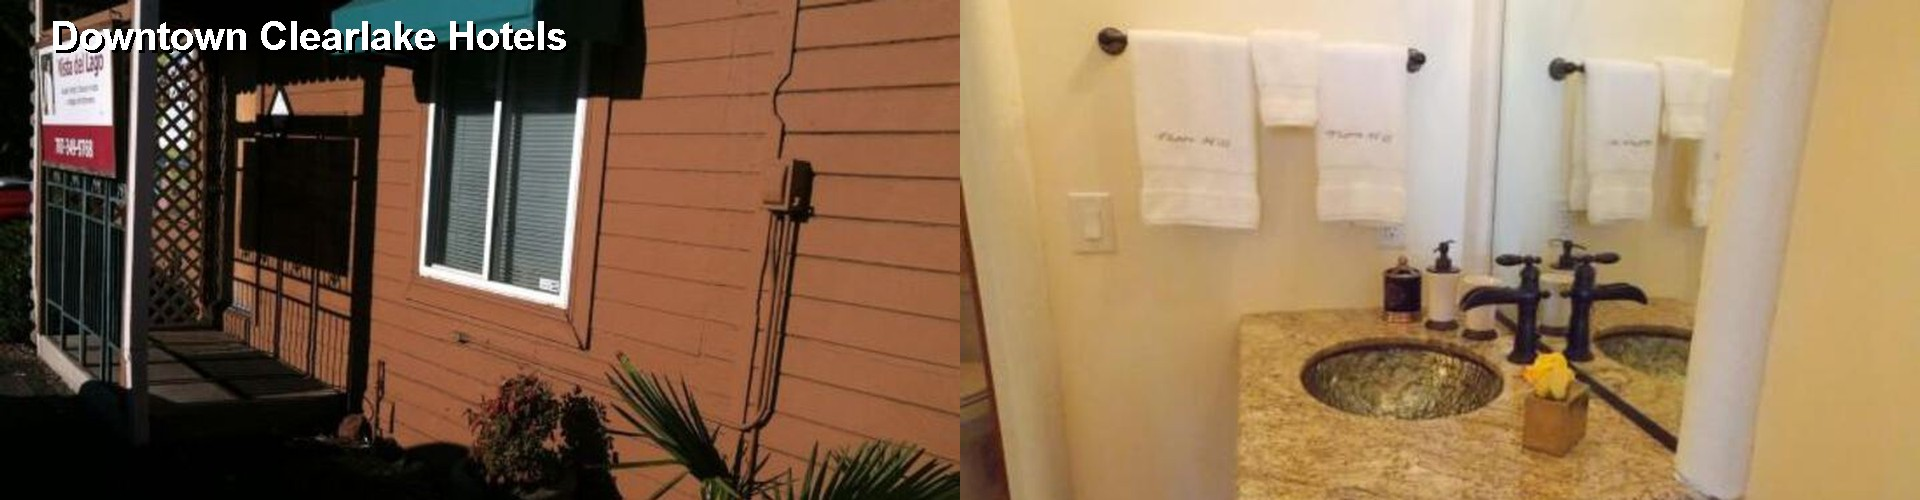 36 Hotels Near Downtown Clearlake In Clear Lake Ca